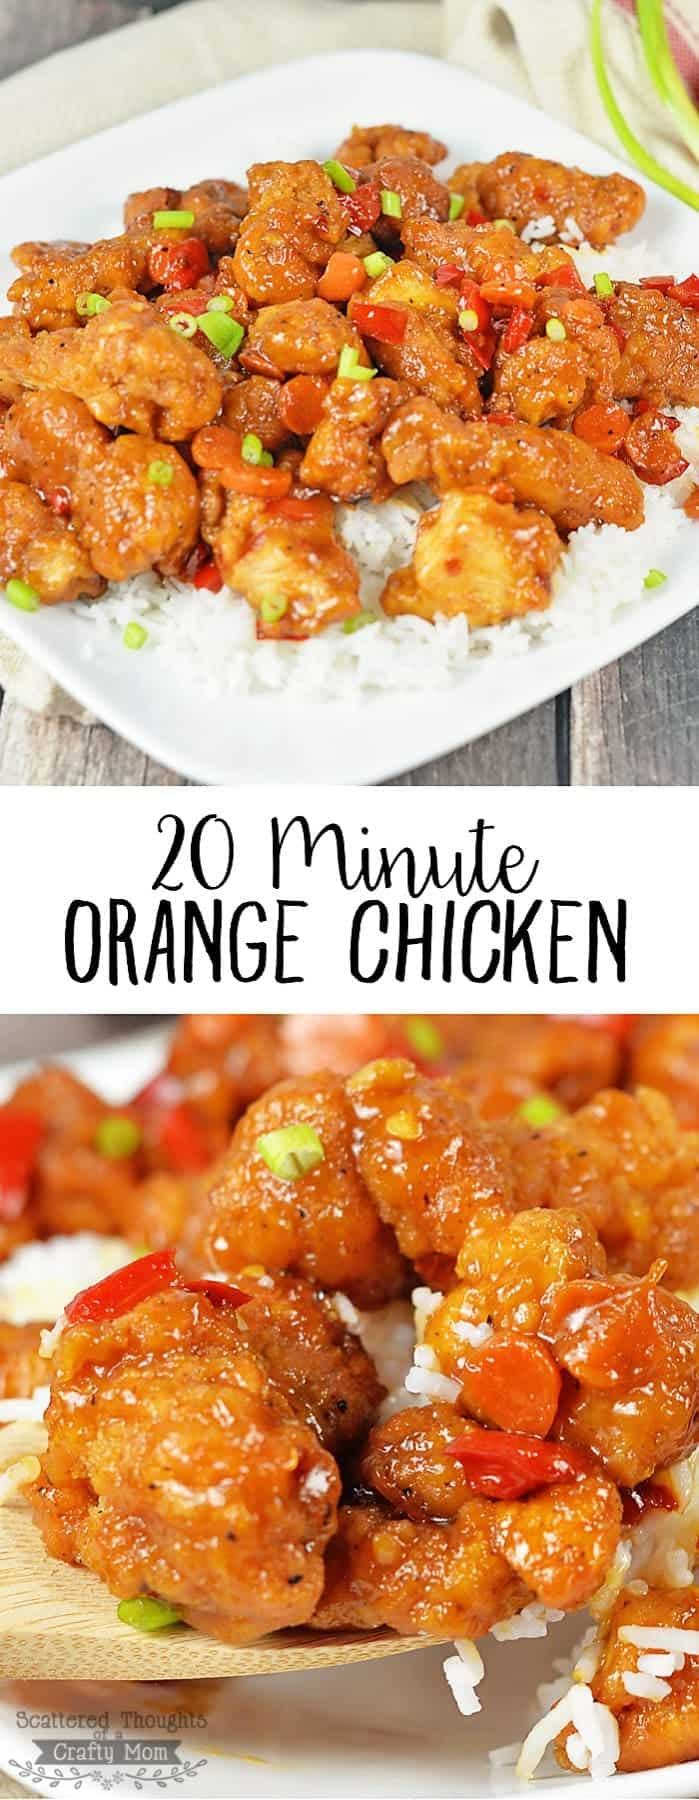 Easy Orange Chicken Recipe On The Table In 20 Minutes